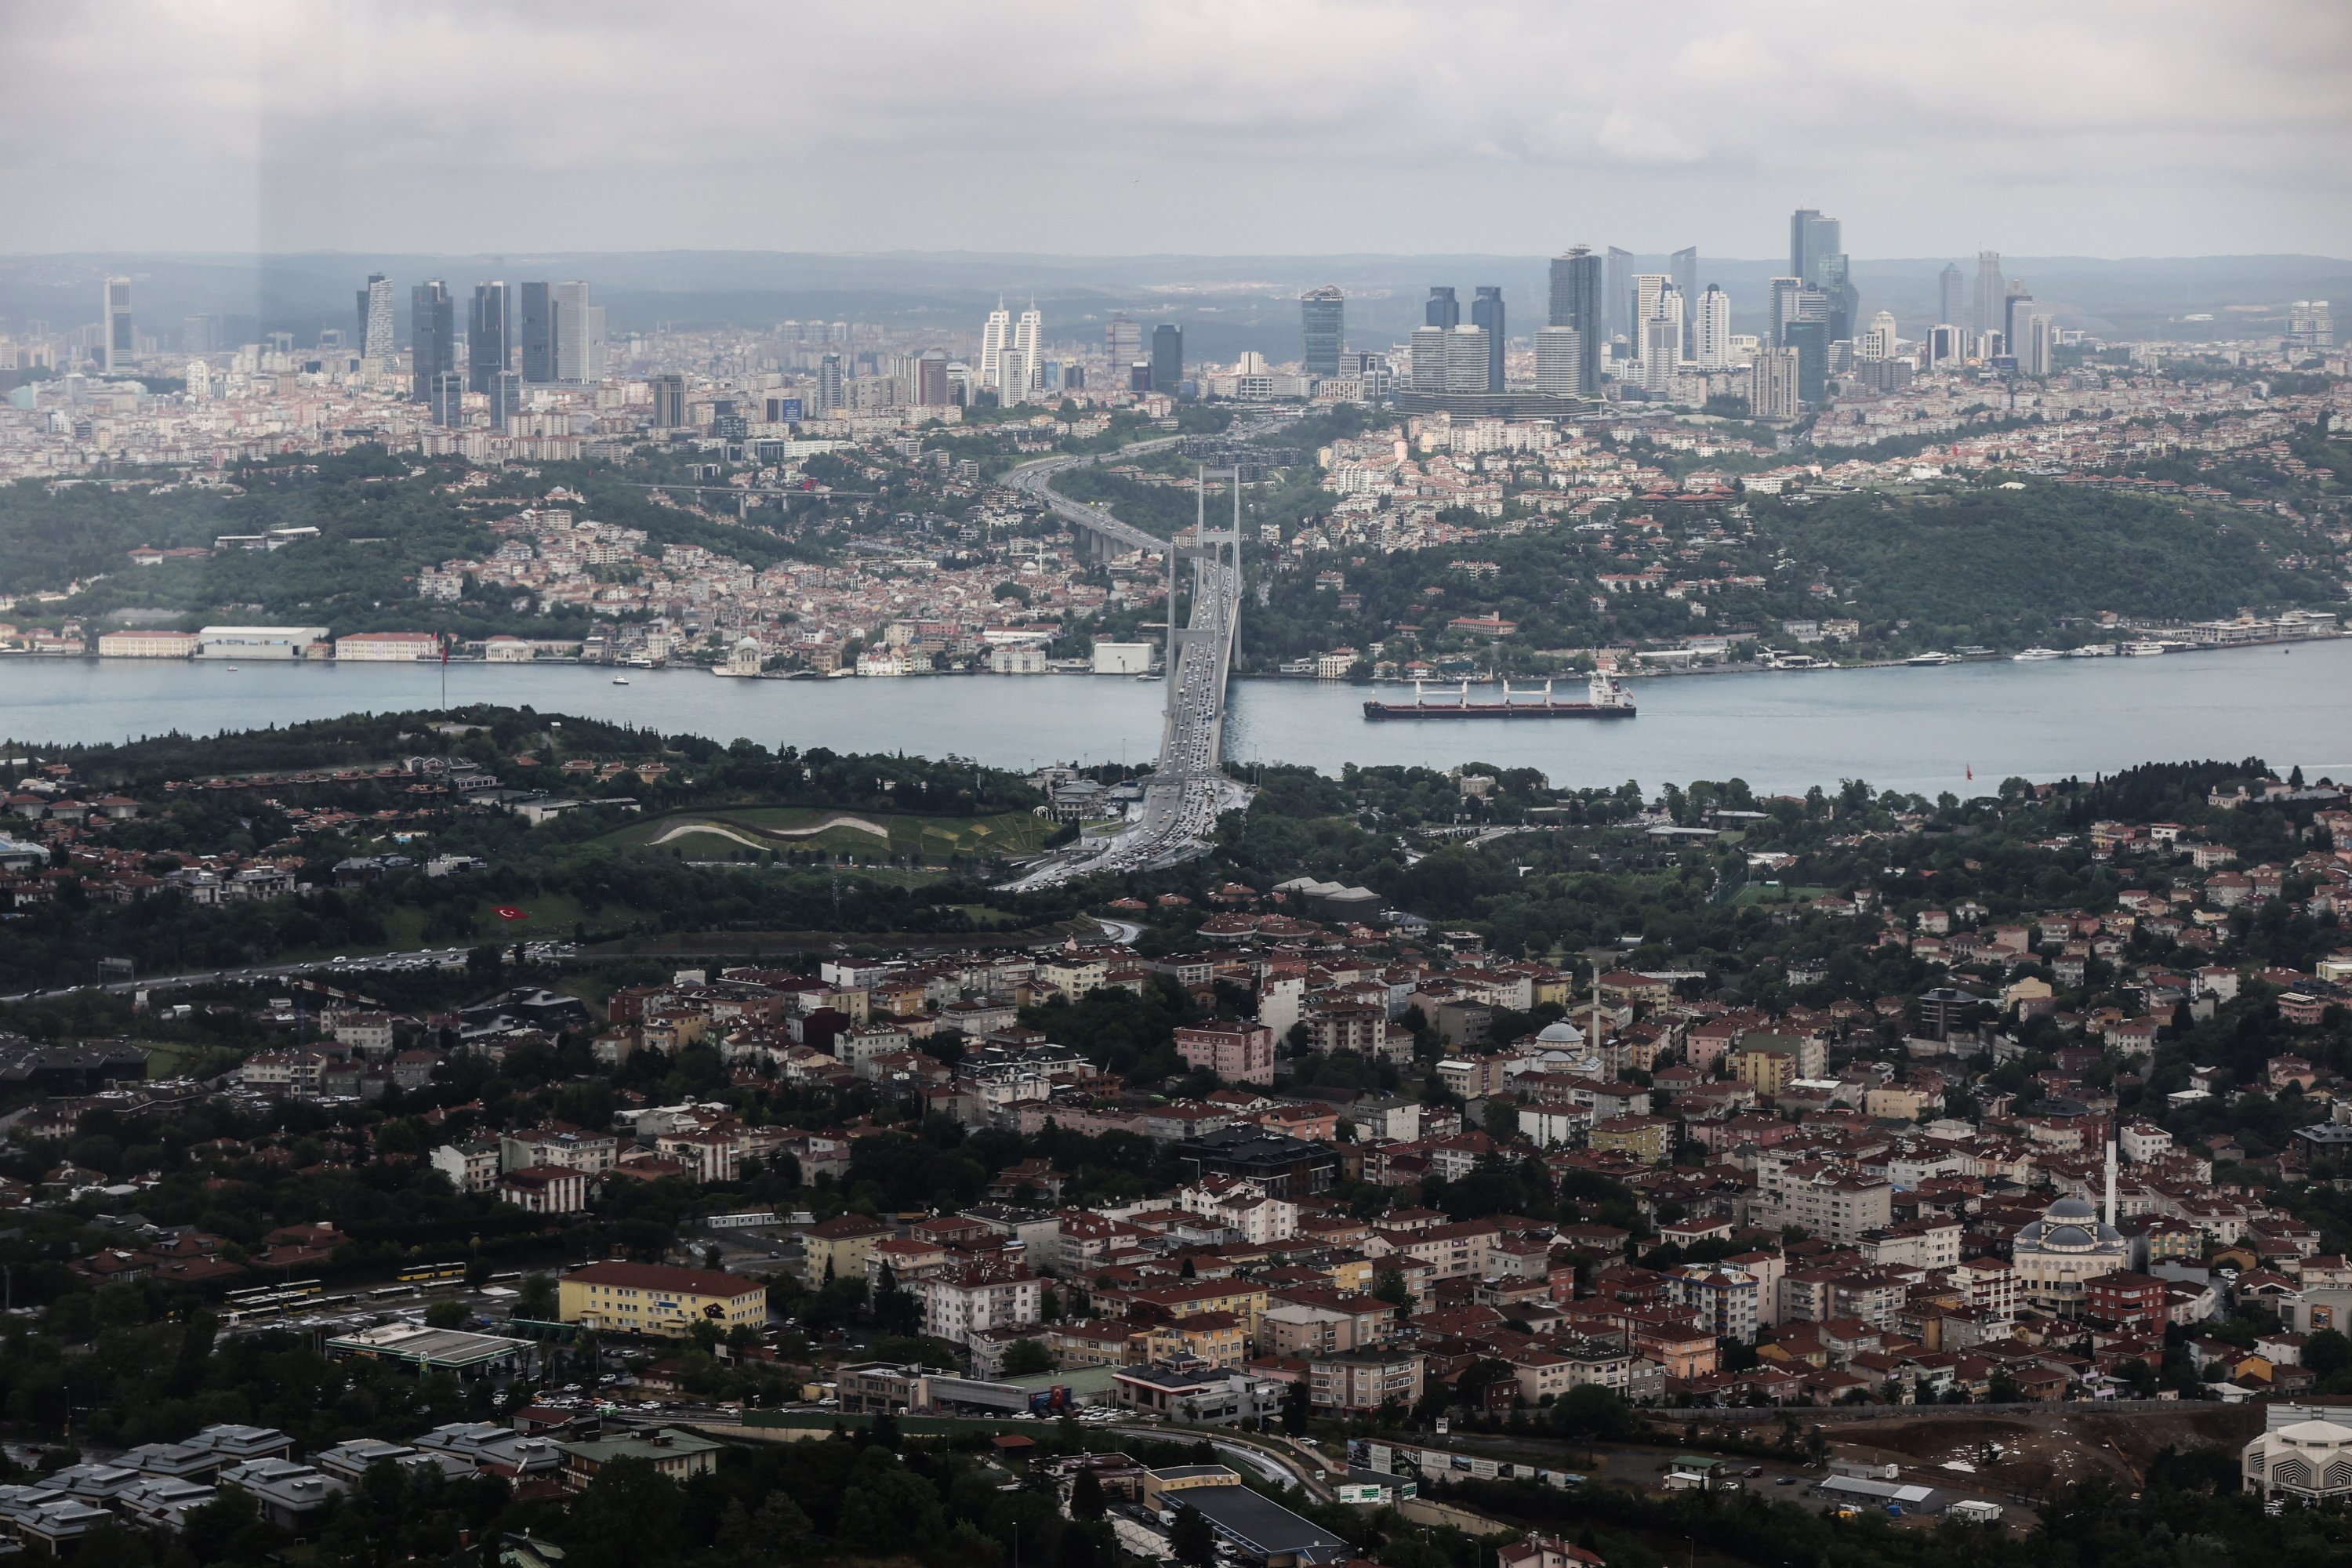 The view of the Bosporus, the July 15 Martyrs Bridge and the city skyline from an observation deck at the Çamlıca Tower, in the Üsküdar district, Istanbul, Turkey, June 1, 2021.